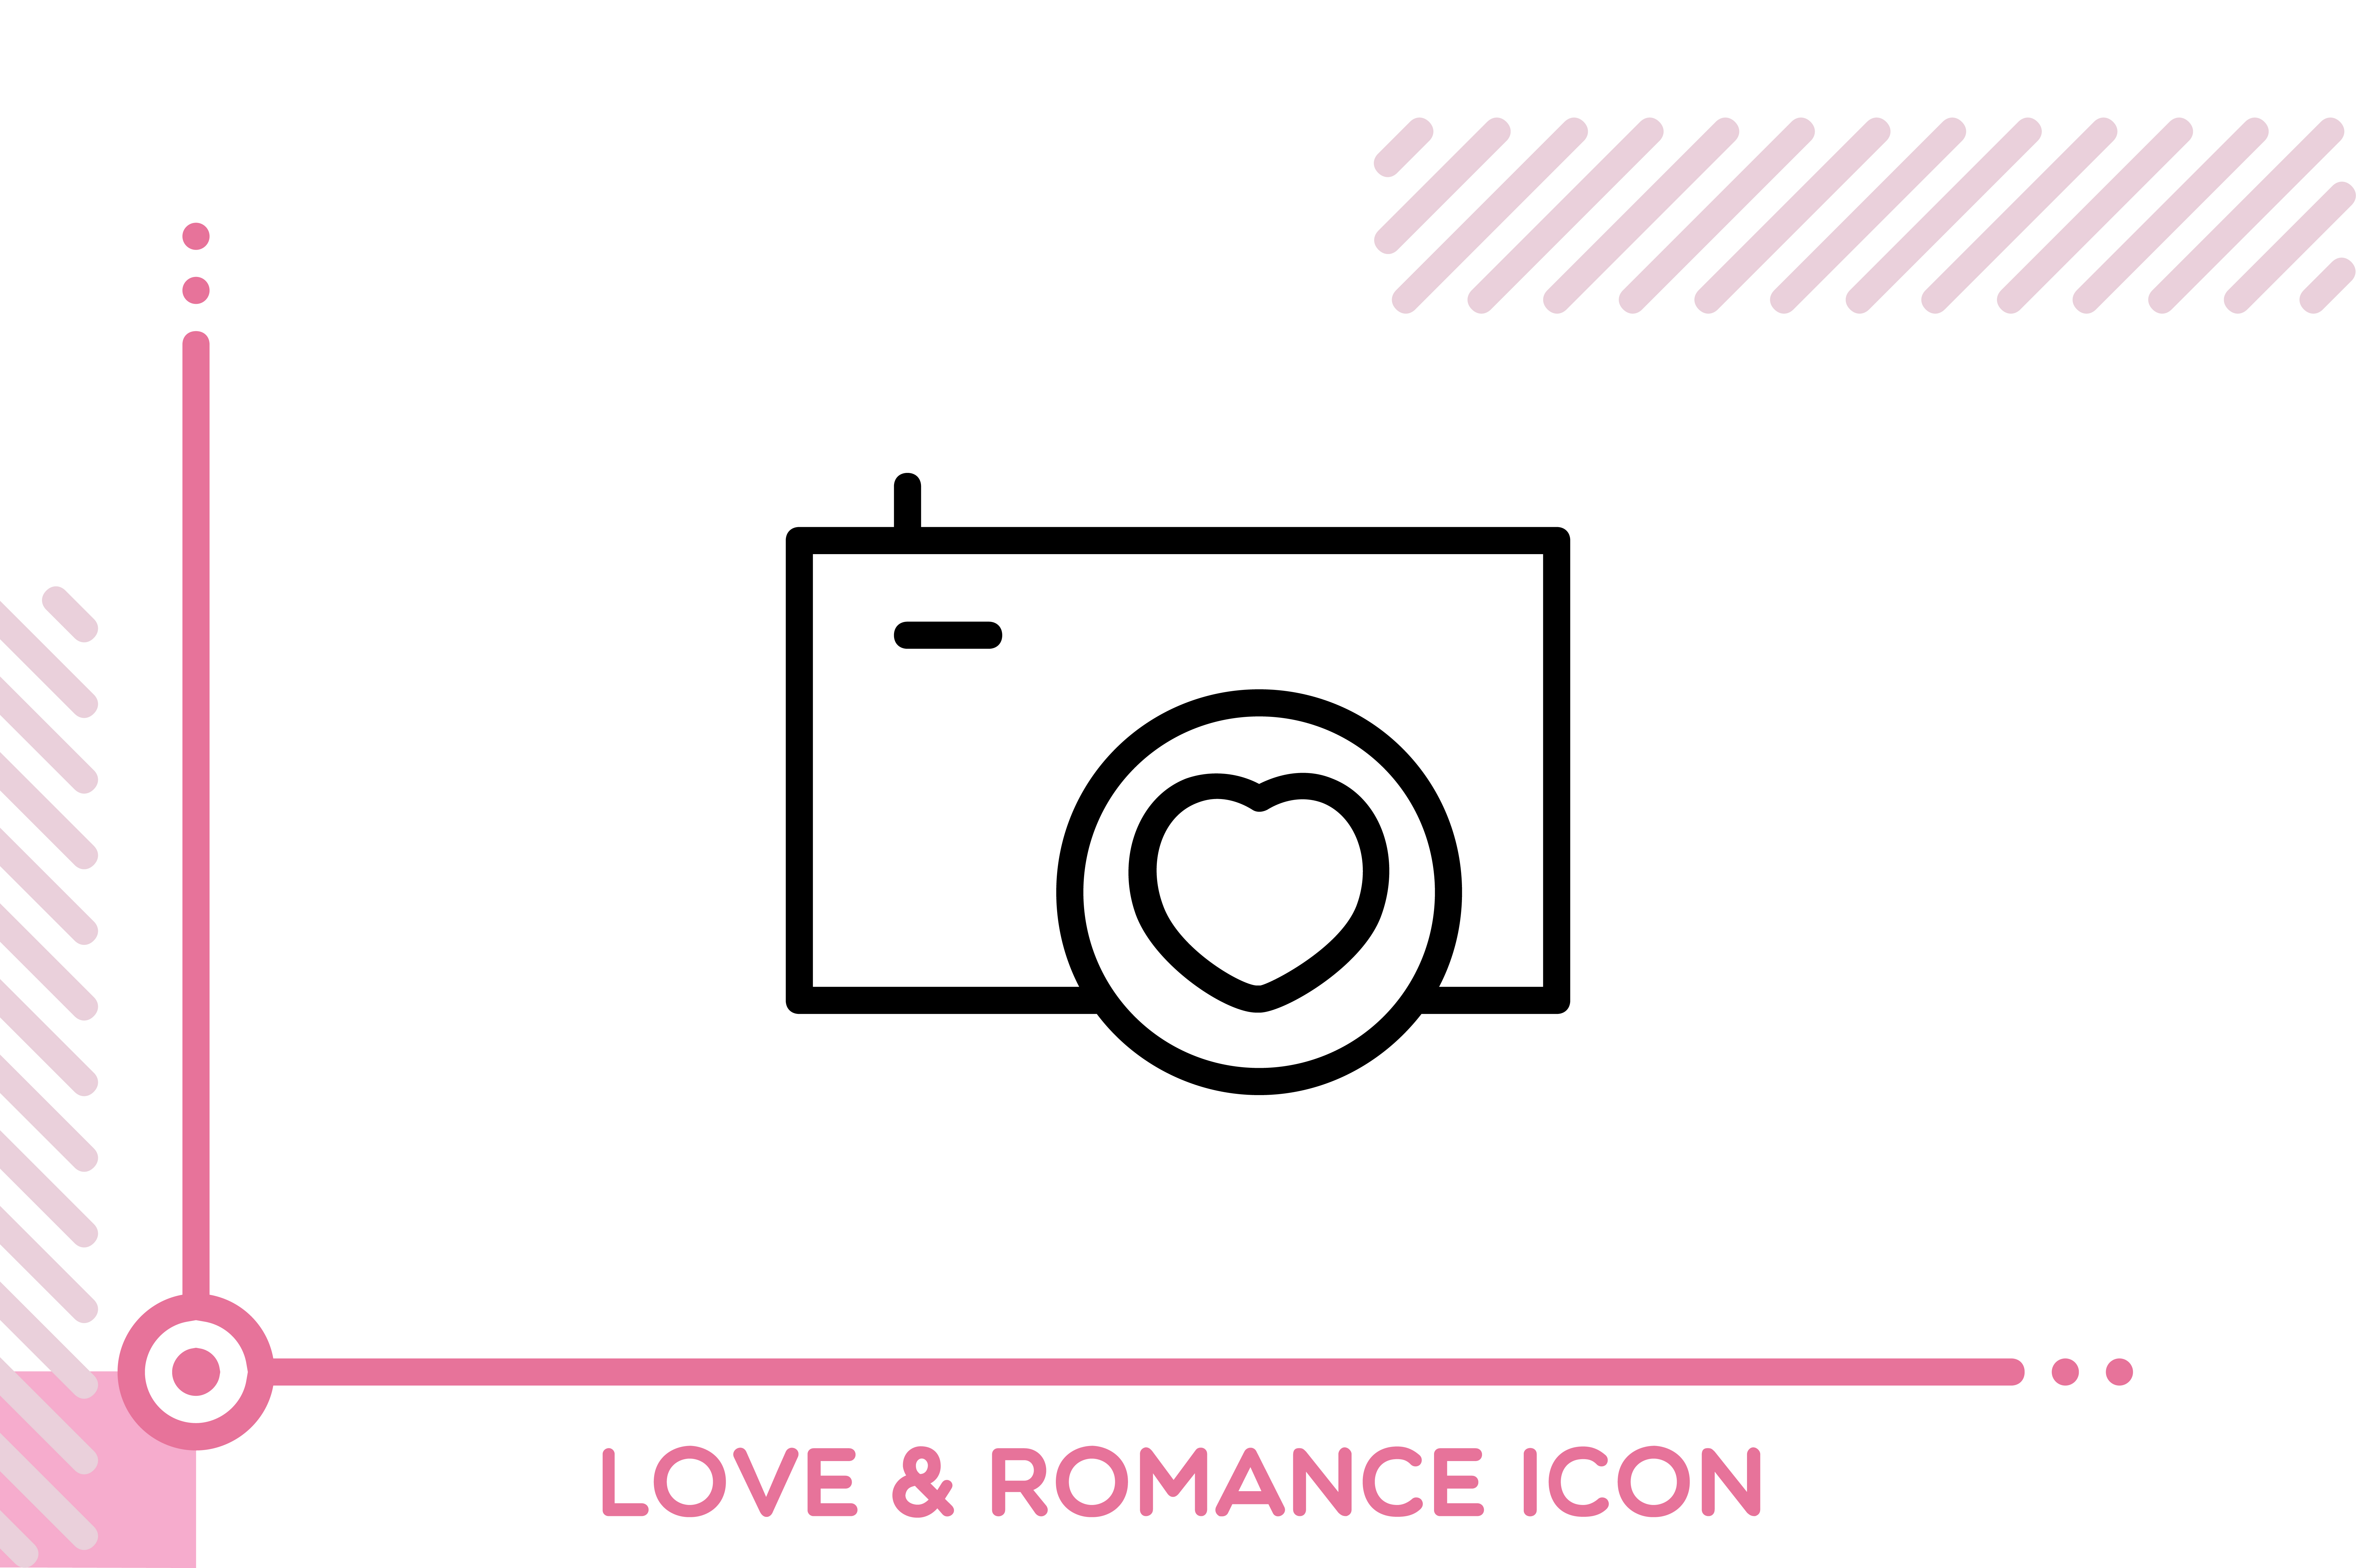 Download Free Love And Romance Camera Graphic By Freddyadho Creative Fabrica for Cricut Explore, Silhouette and other cutting machines.